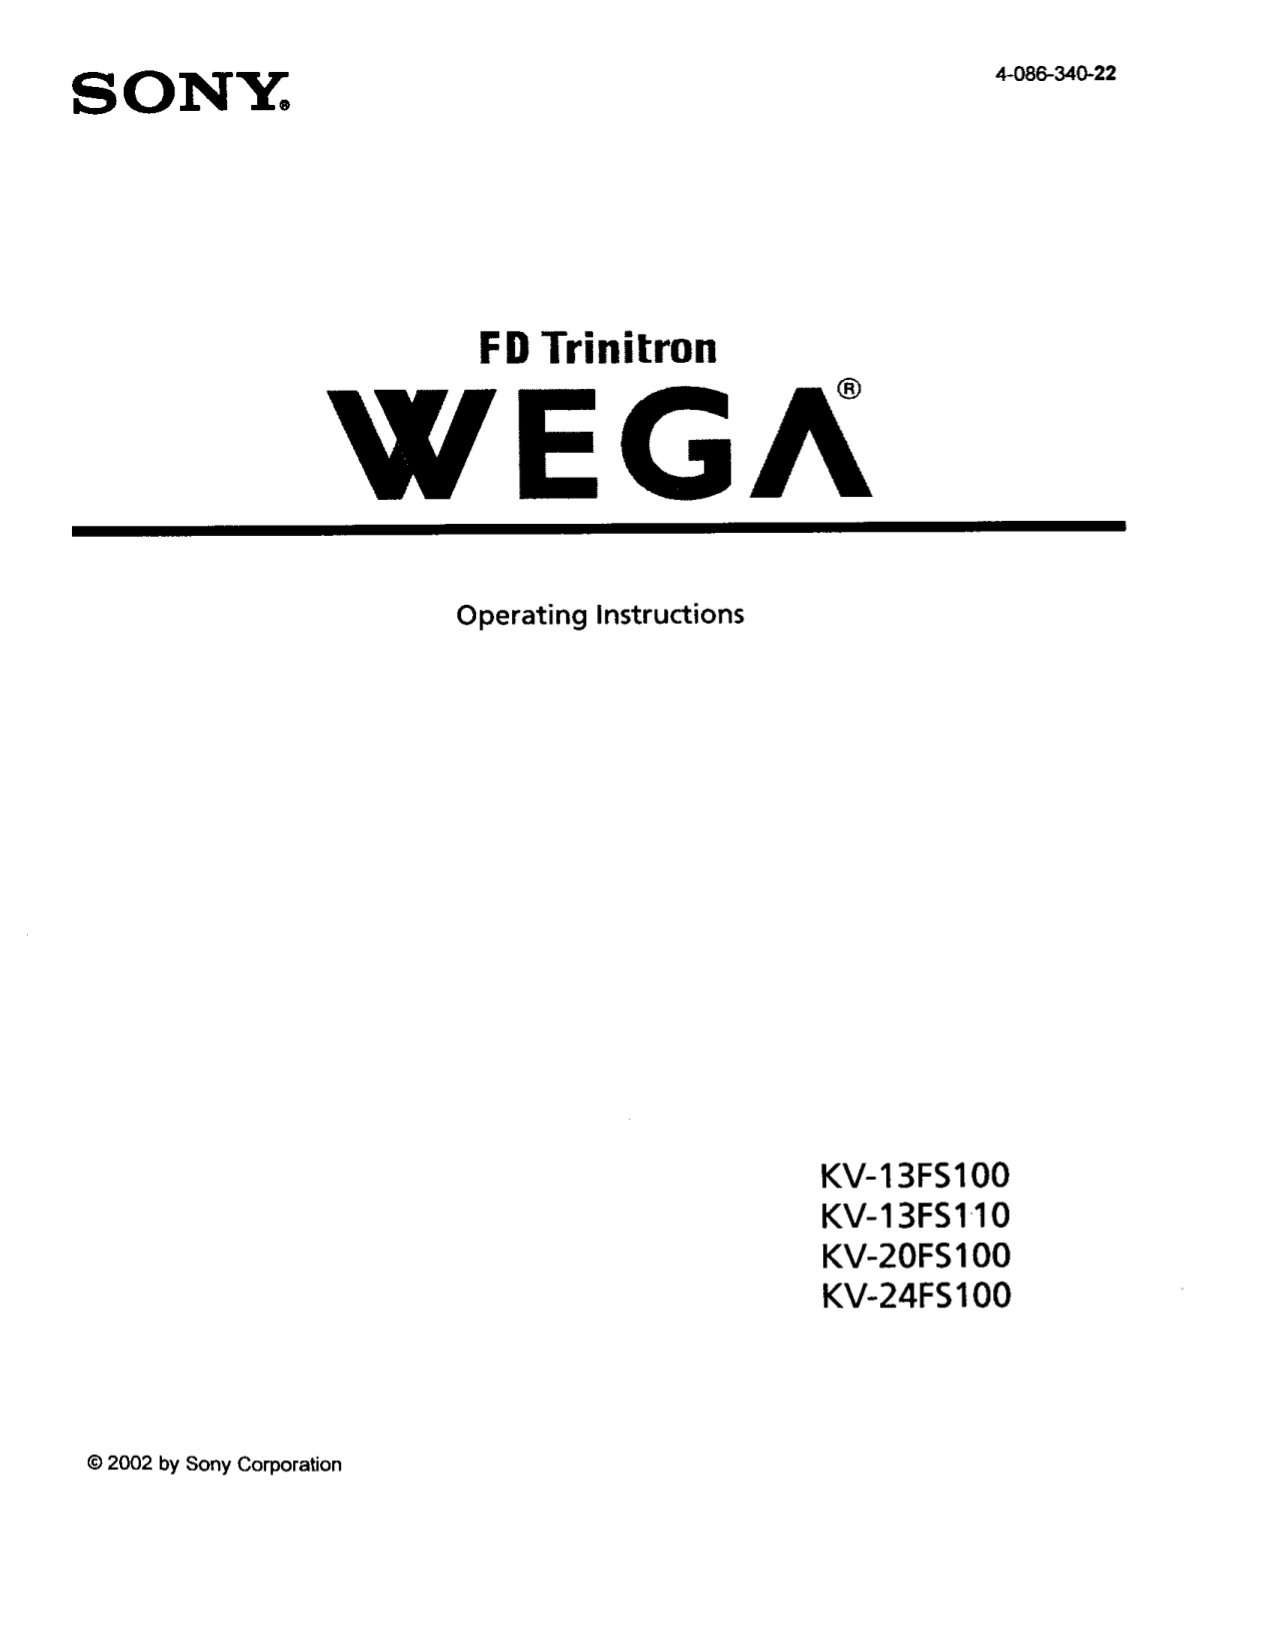 Download free pdf for Sony WEGA KV-13FS100 TV manual